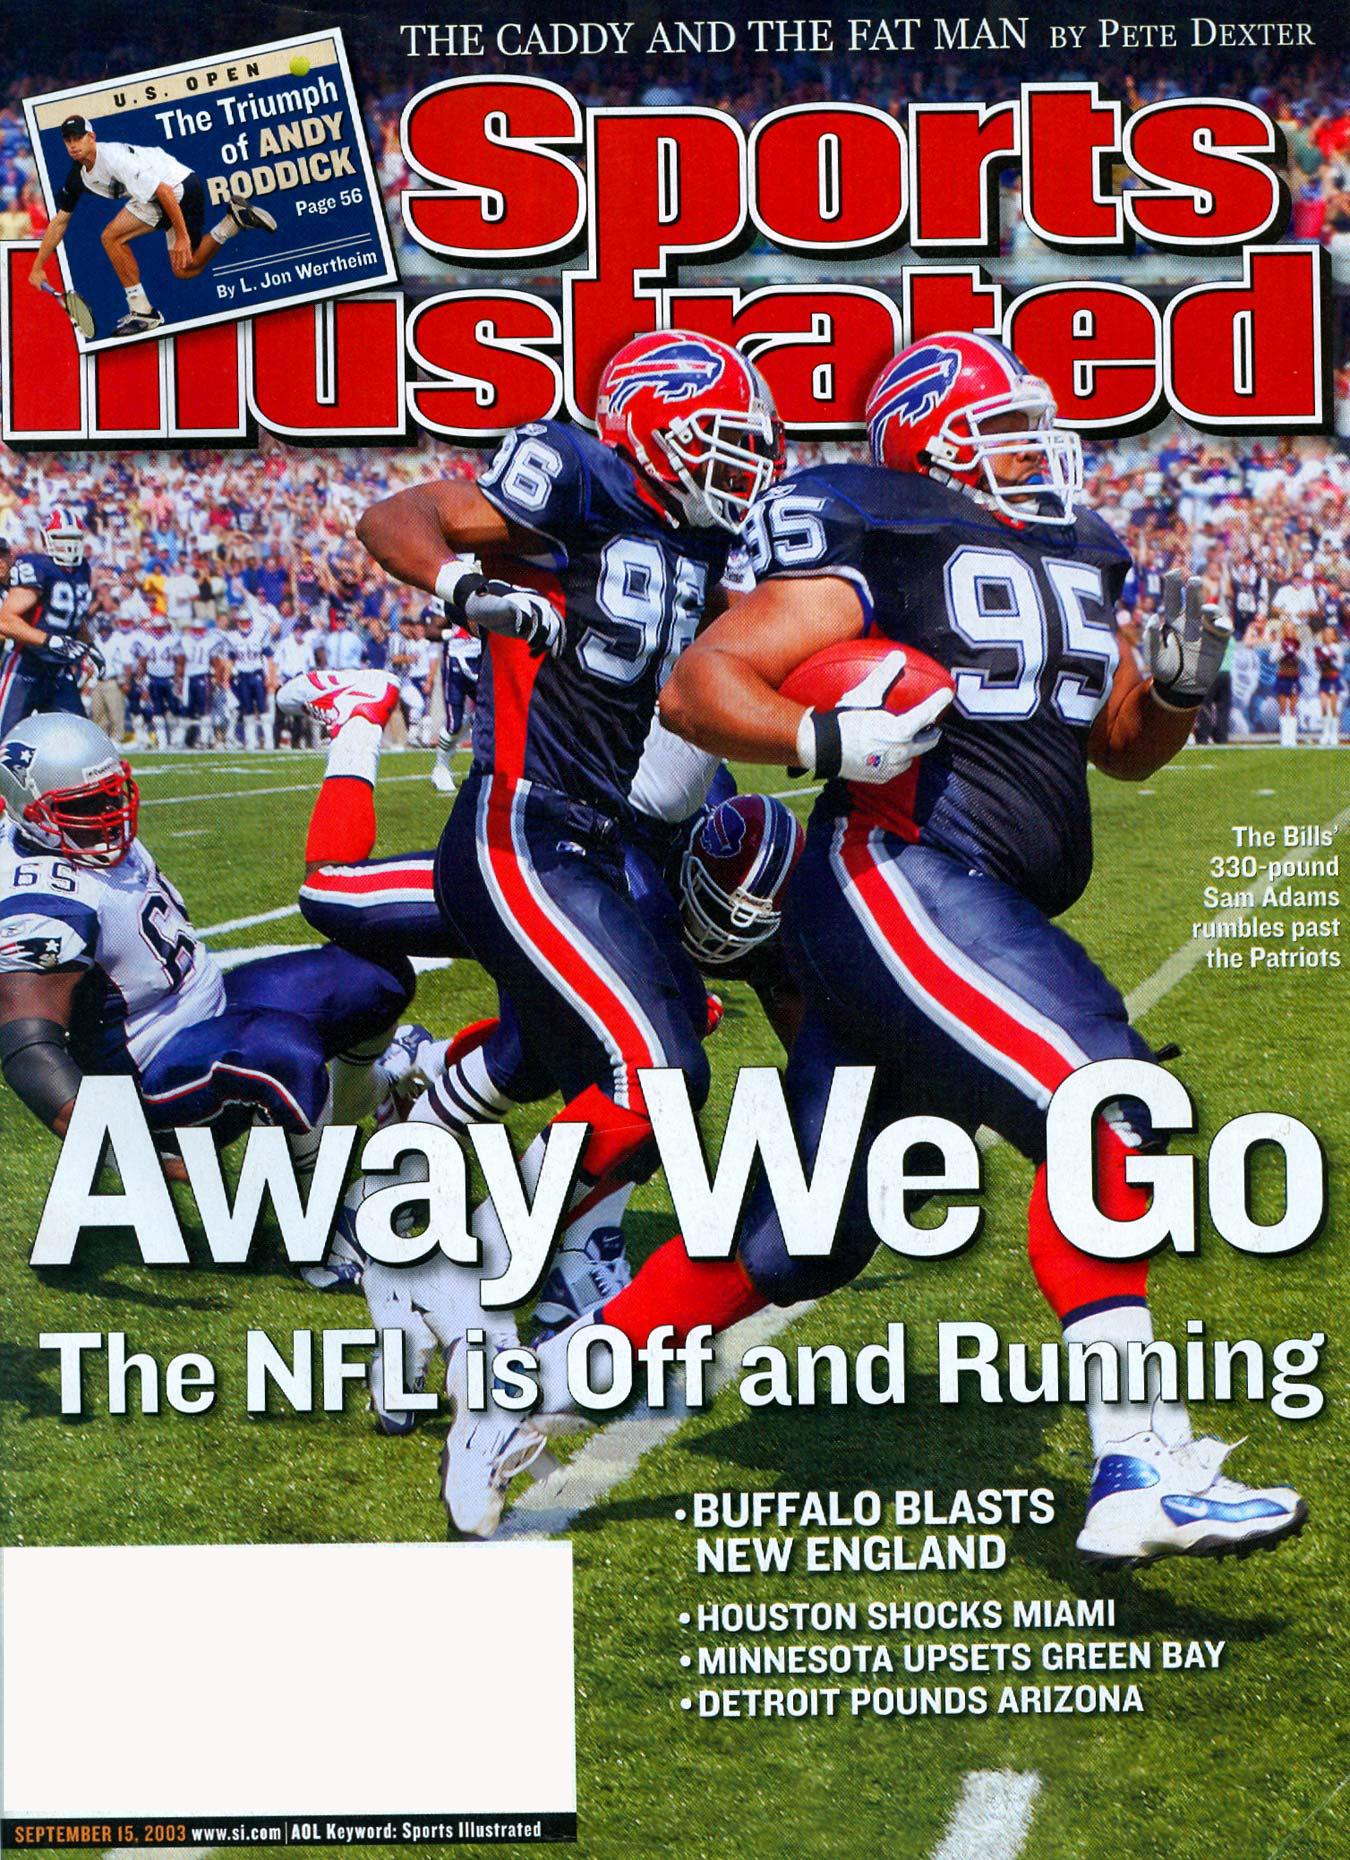 Buffalo Bills defensive lineman Sam Adams on the cover of Sports Illustrated.